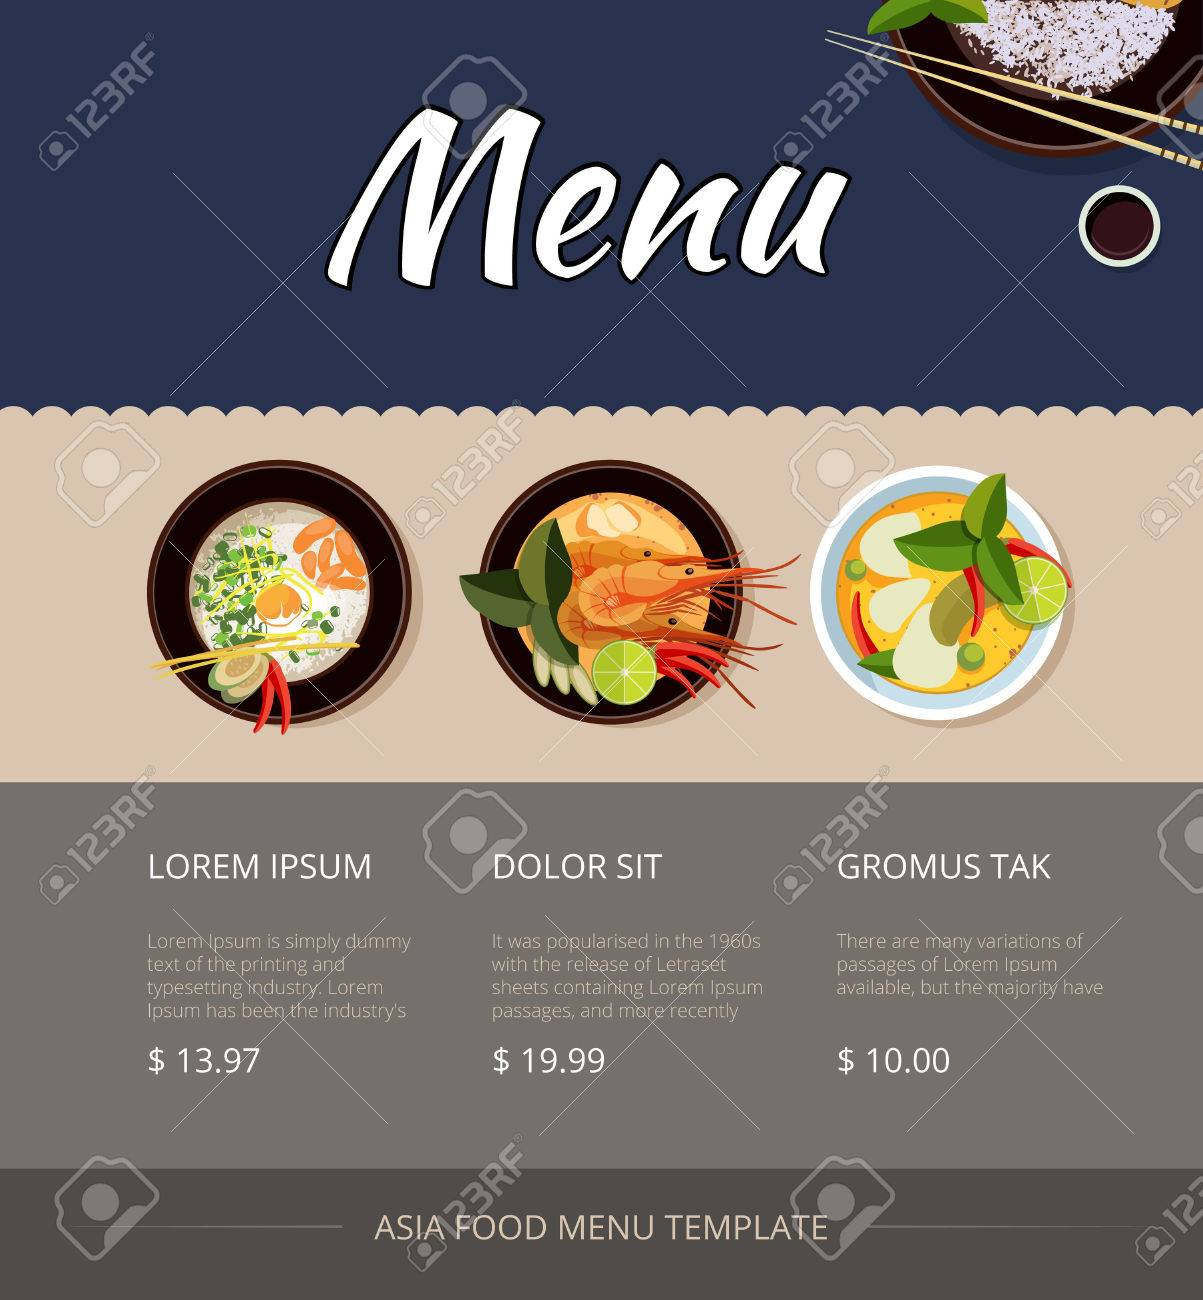 Thai Food Menu Template Design. Price And Buy, Shrimp And Cuisine, Breakfast  Seafood  Breakfast Menu Template